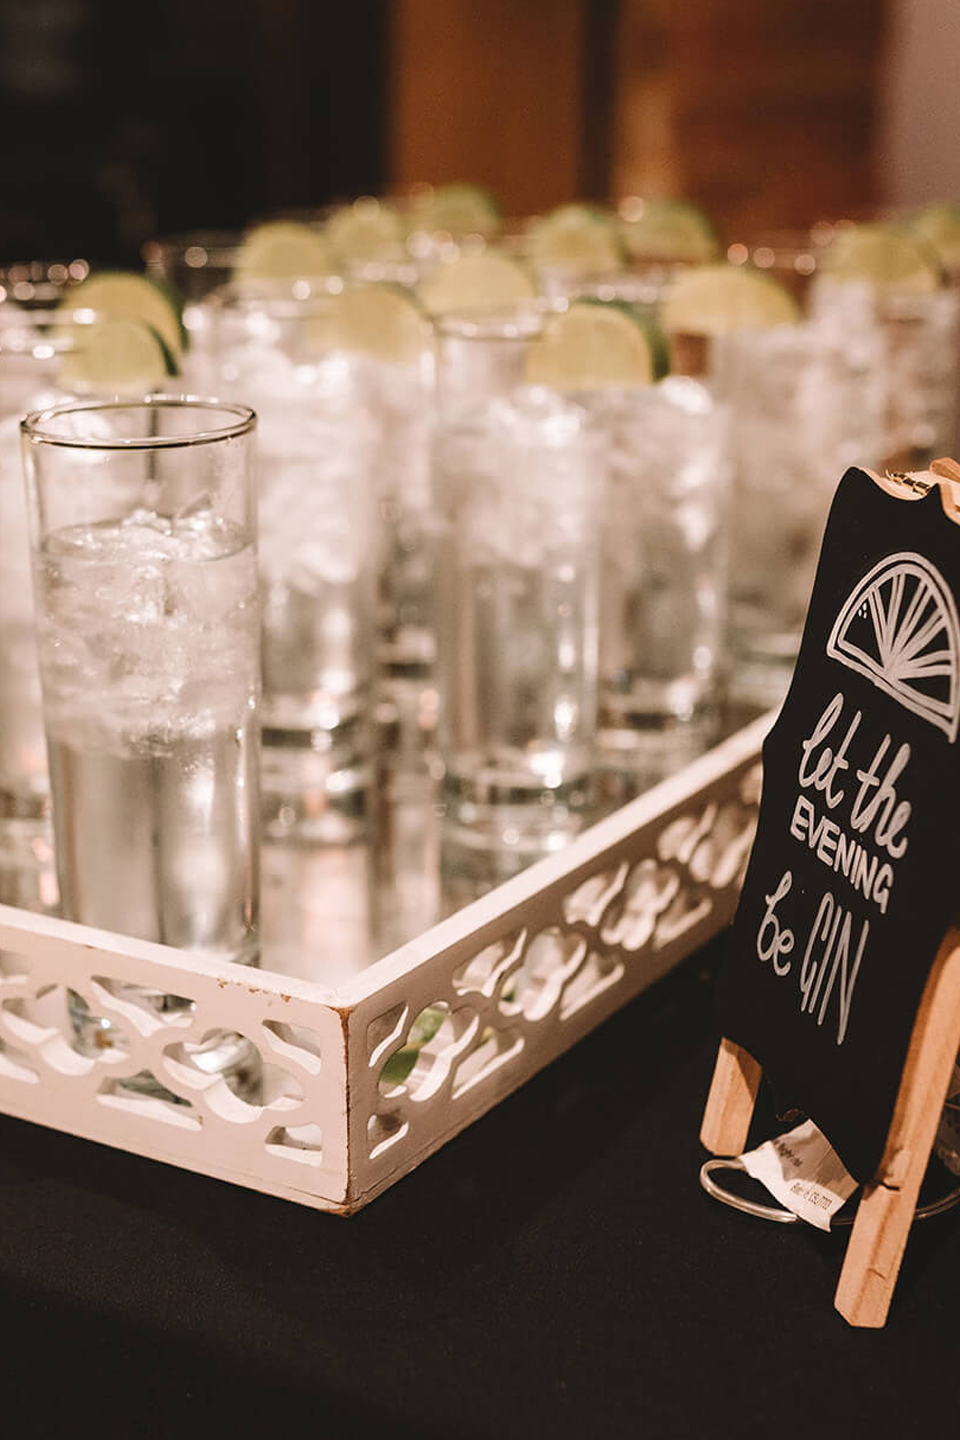 Dress your gin bar at Bassmead Manor Barns with quirky quotes to add personality to your wedding